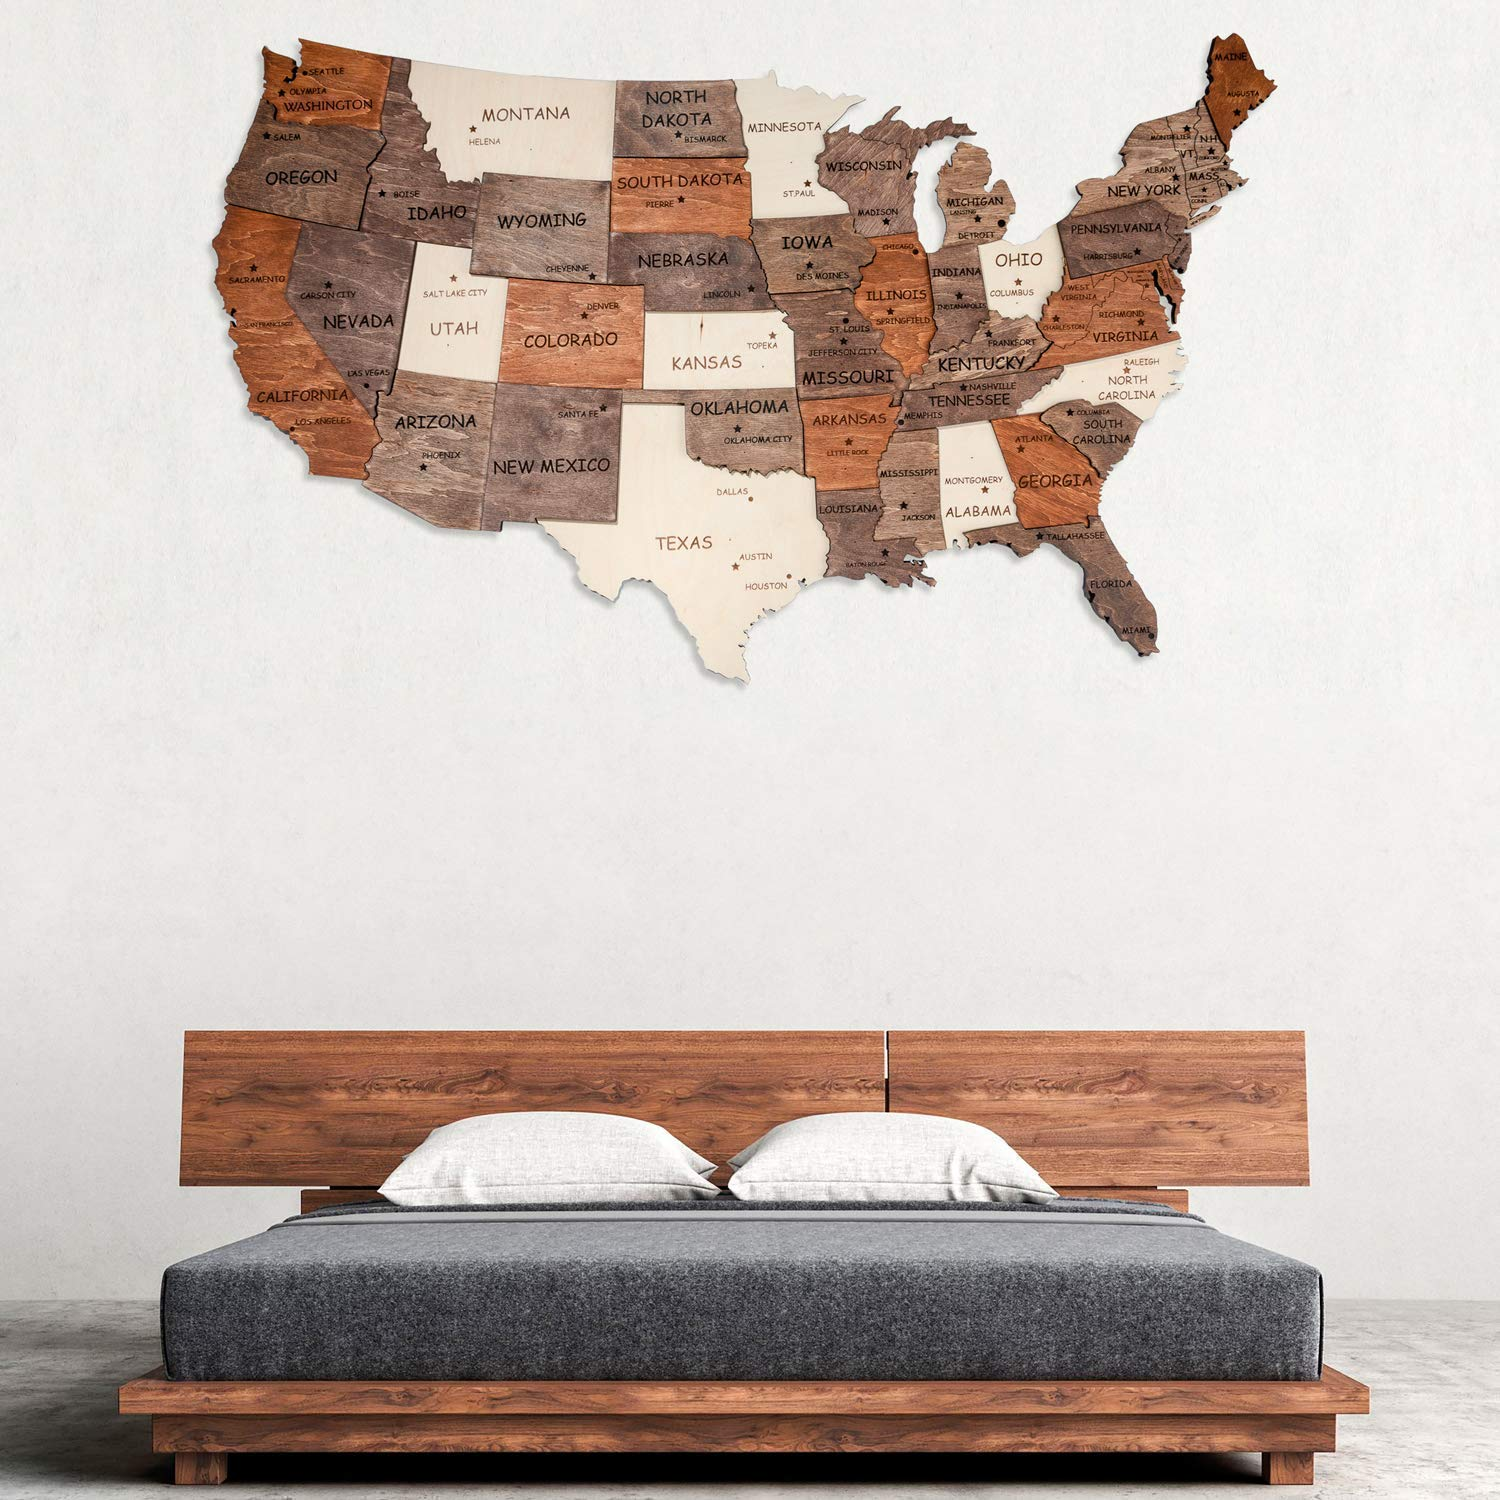 3D wood Map Of United States Wooden Wall Art Wooden Map Dorm Decor Map of USA Handing Husband Boyfriend Gift 3D Wall Map Wedding Gift For Couple